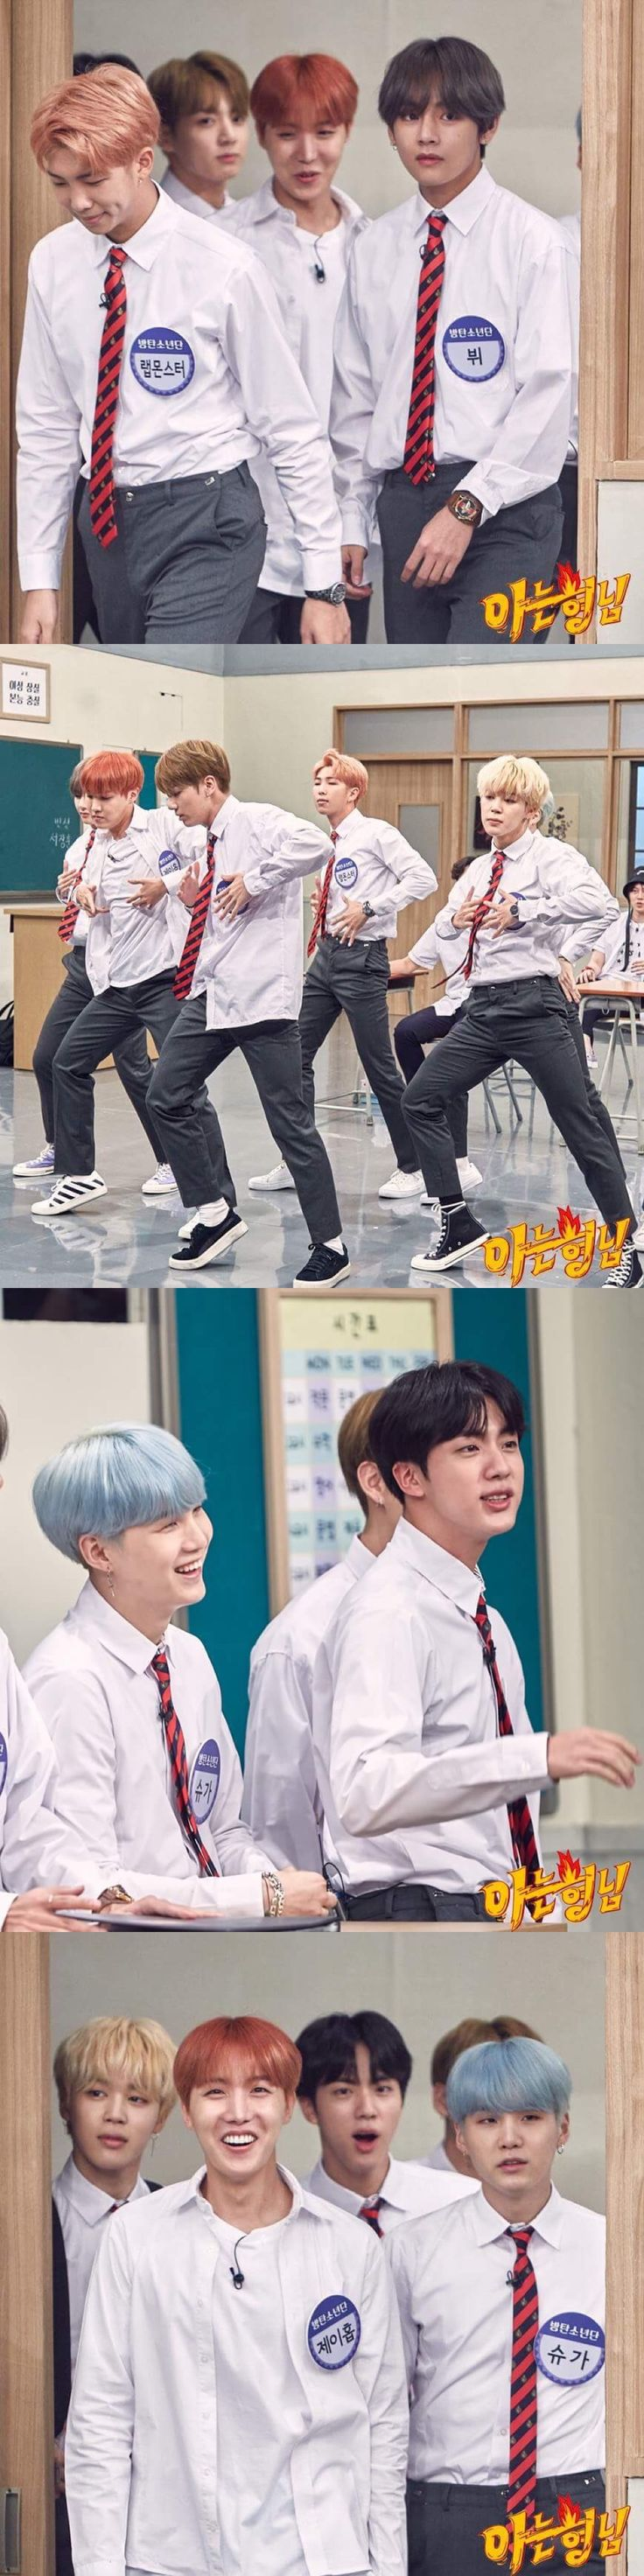 ♡ [PREVIEW] BTS on Knowing Bros which will be aired this Saturday, 23 Sept @ 8.50PM KST ♡